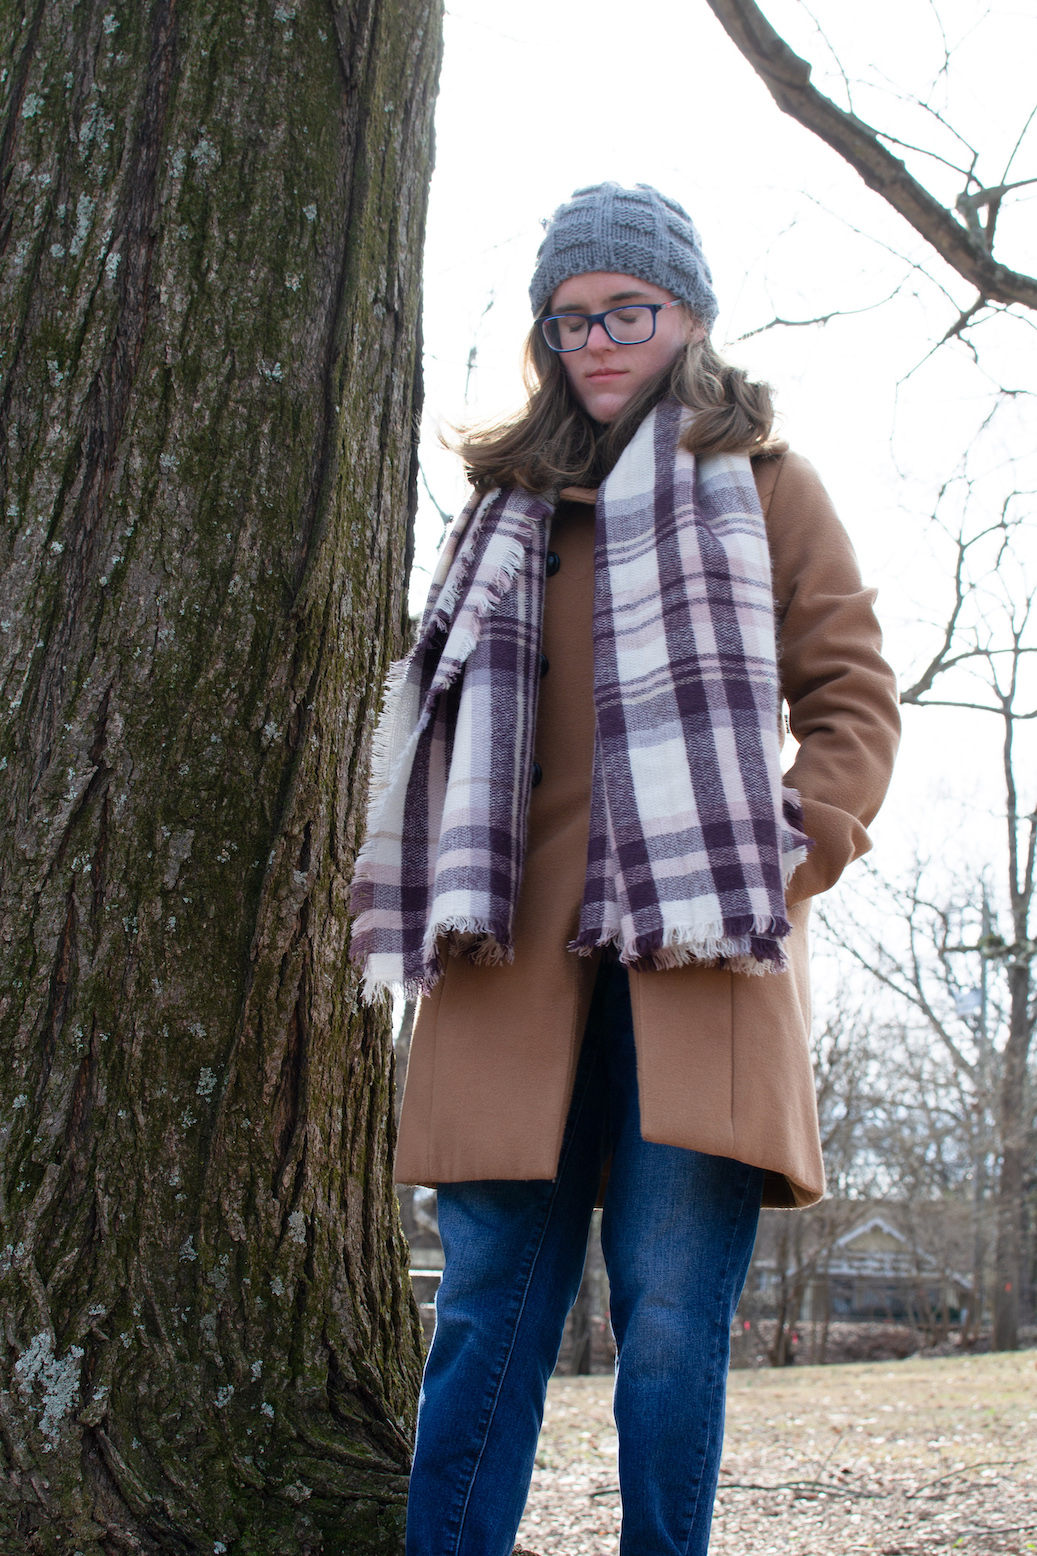 Winter outfit inspiration // A Week Of Casual & Comfortable Secondhand Outfits With Lee Rogers From Layers Of Lee on The Good Trade